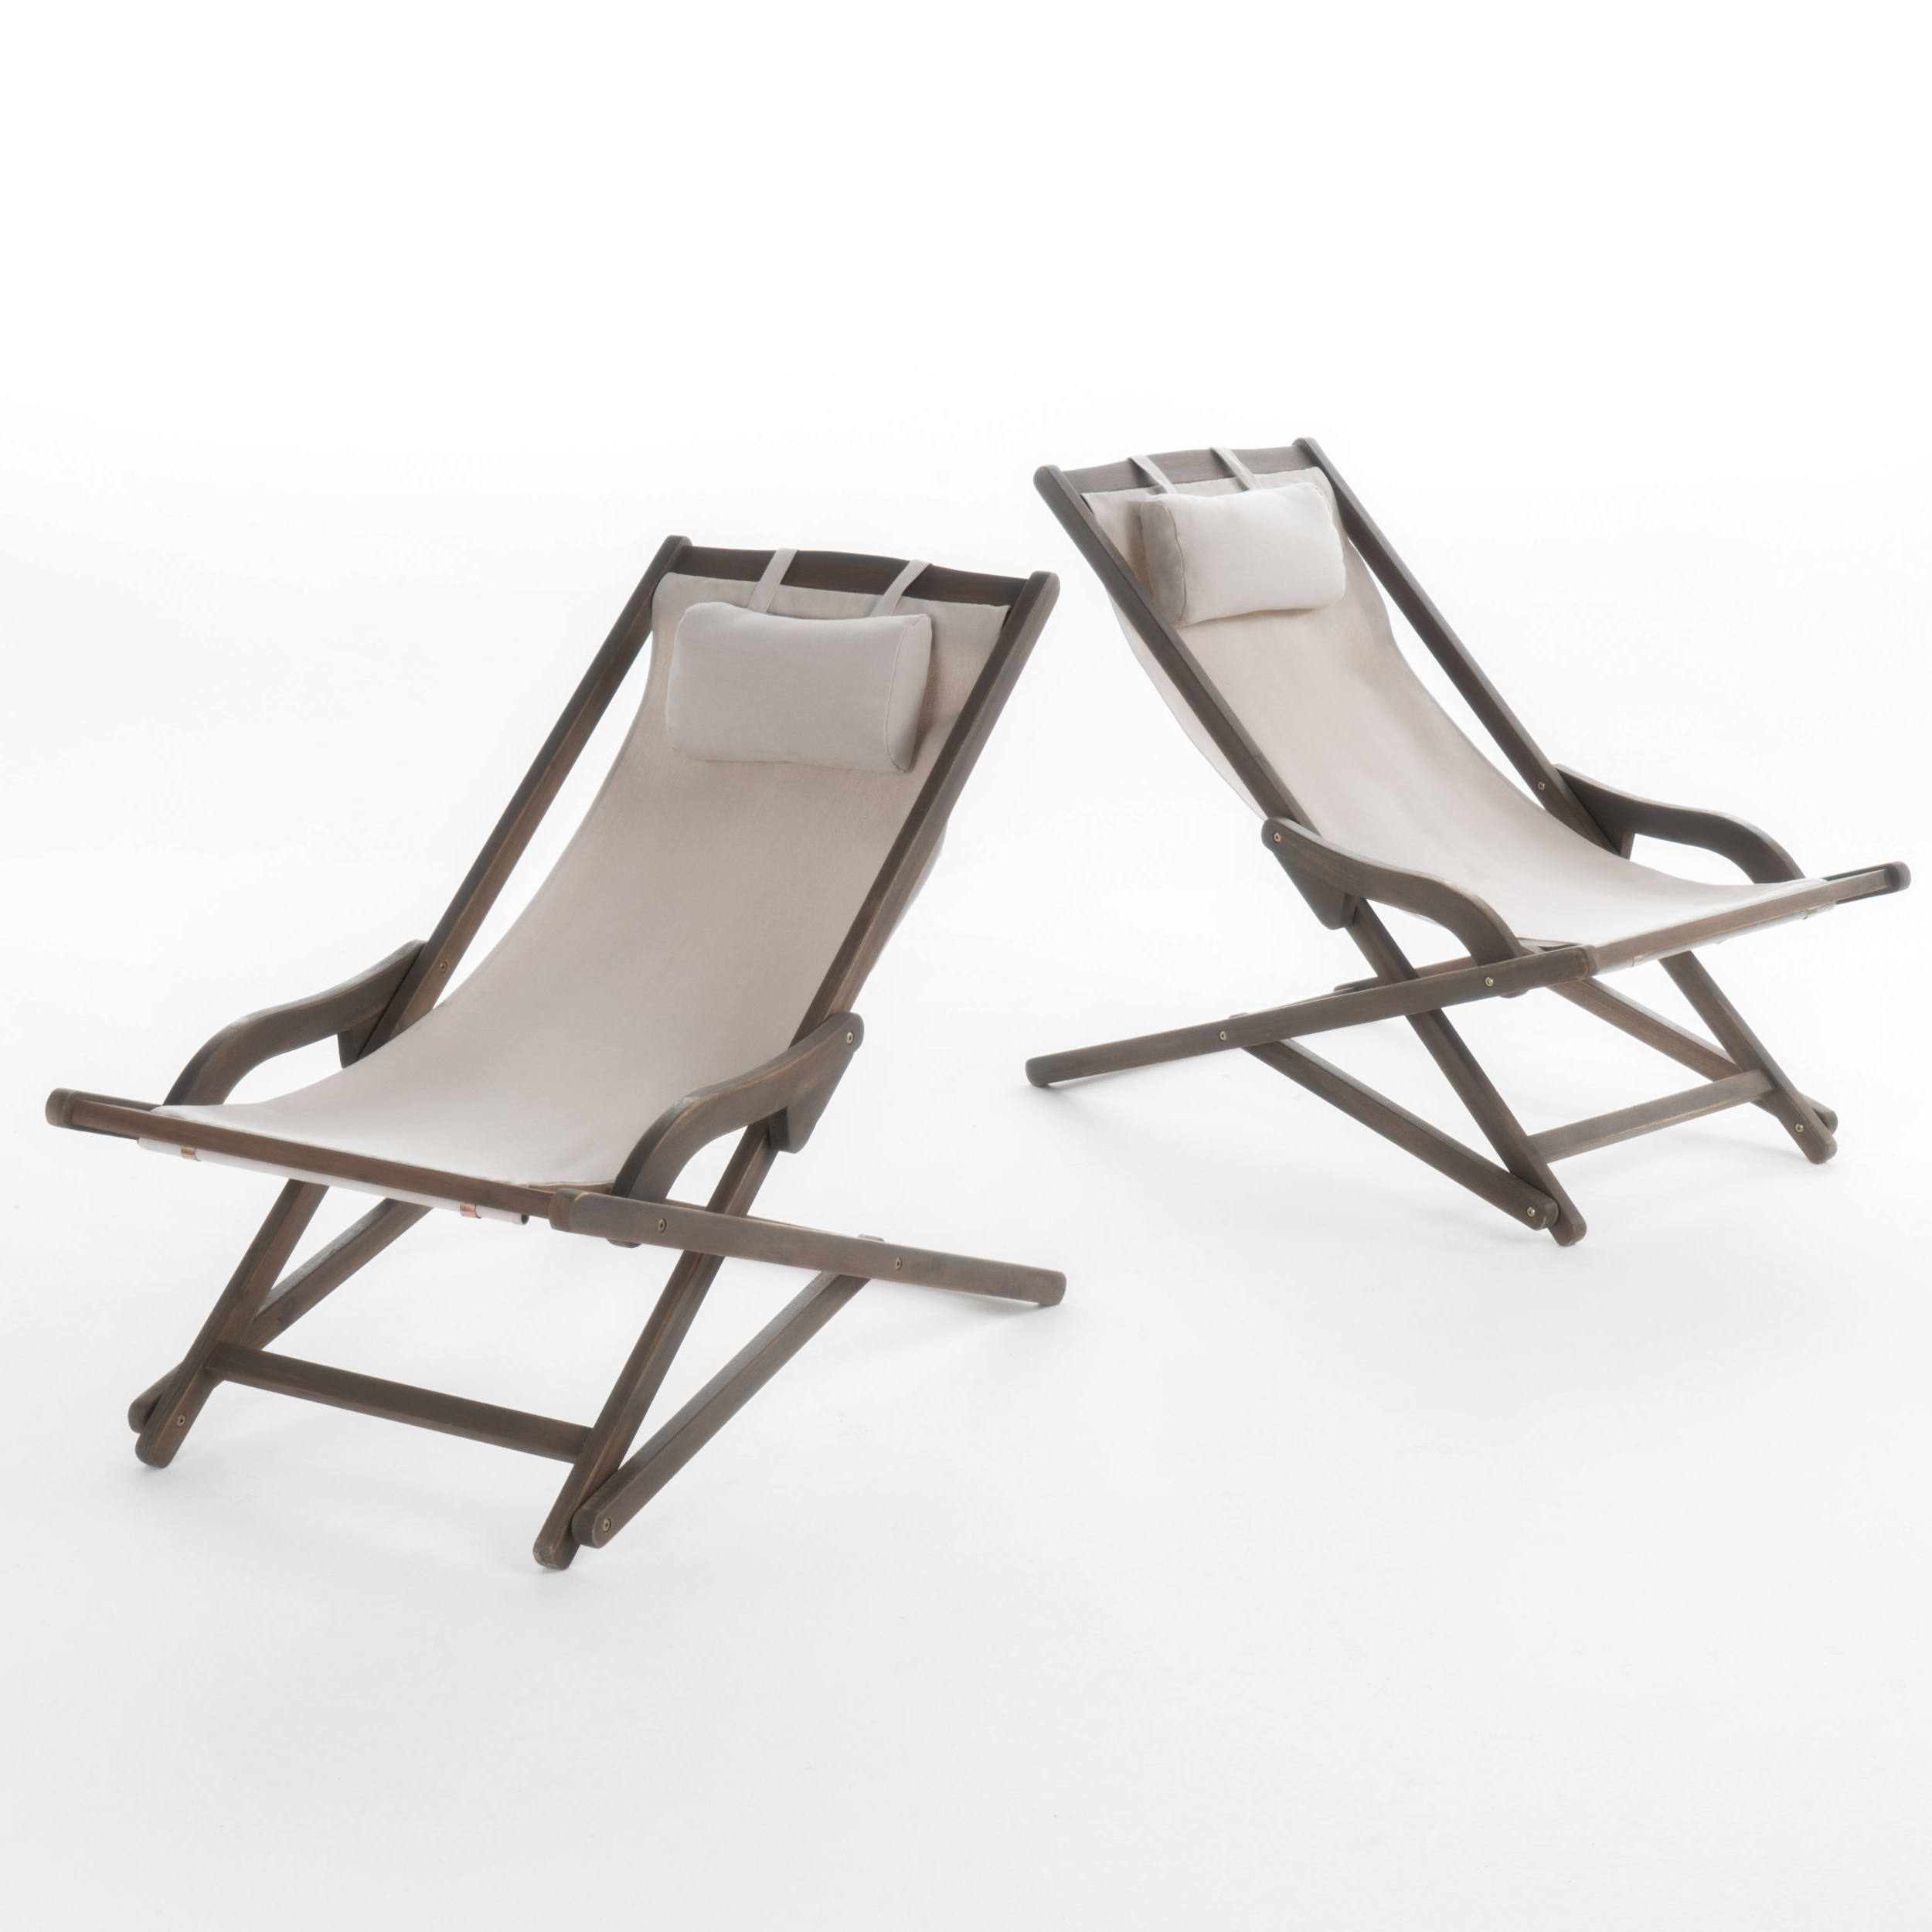 Northland Outdoor Wood And Canvas Sling Chair, Set Of 2, Beige Throughout Famous Outdoor Wood Sling Chairs (View 4 of 25)